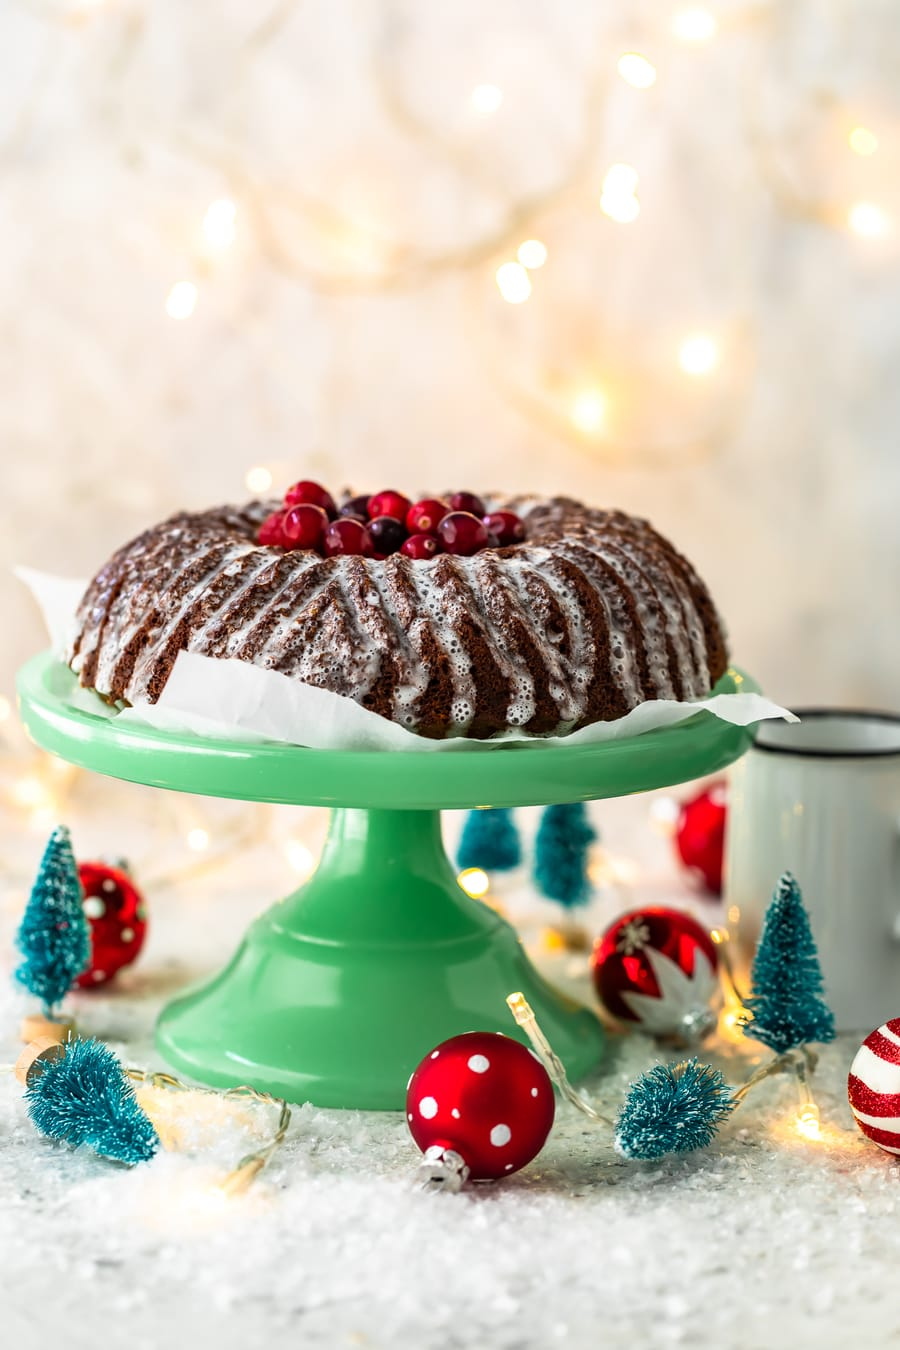 gingerbread cake on a green cake stand, surrounded by small Christmas decorations